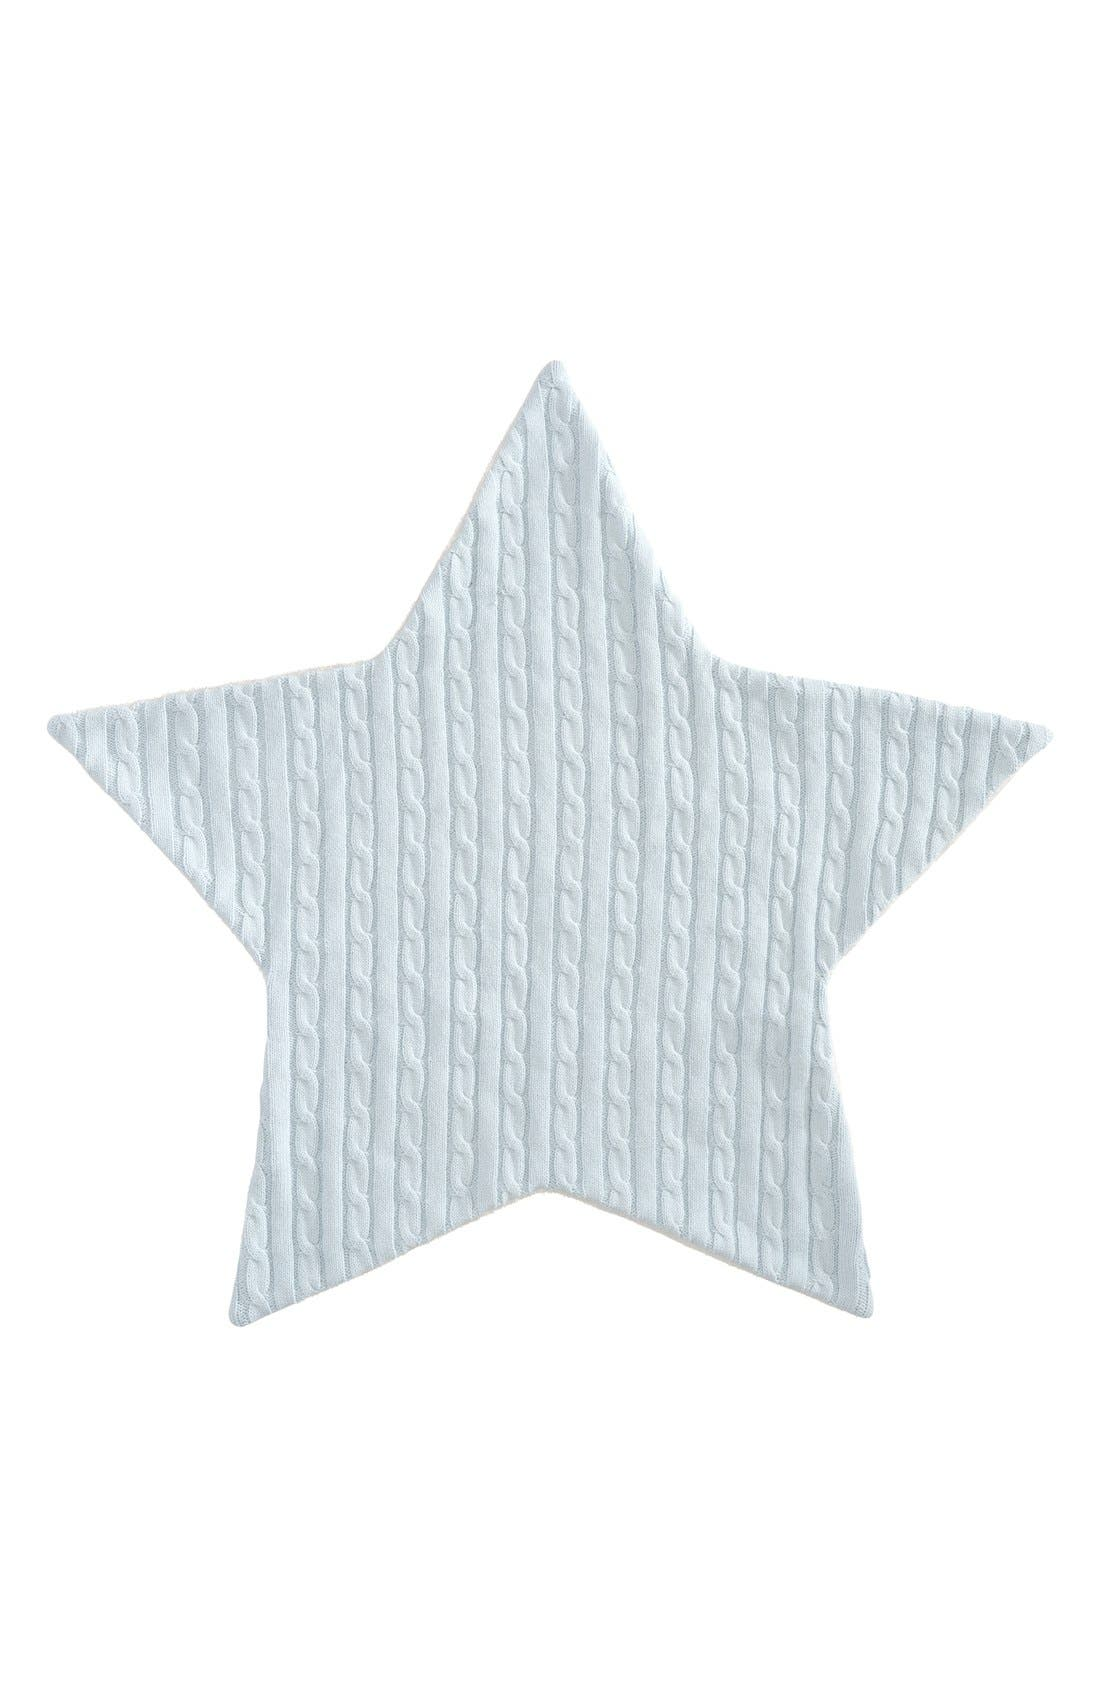 Cable Knit Star Blanket,                             Main thumbnail 2, color,